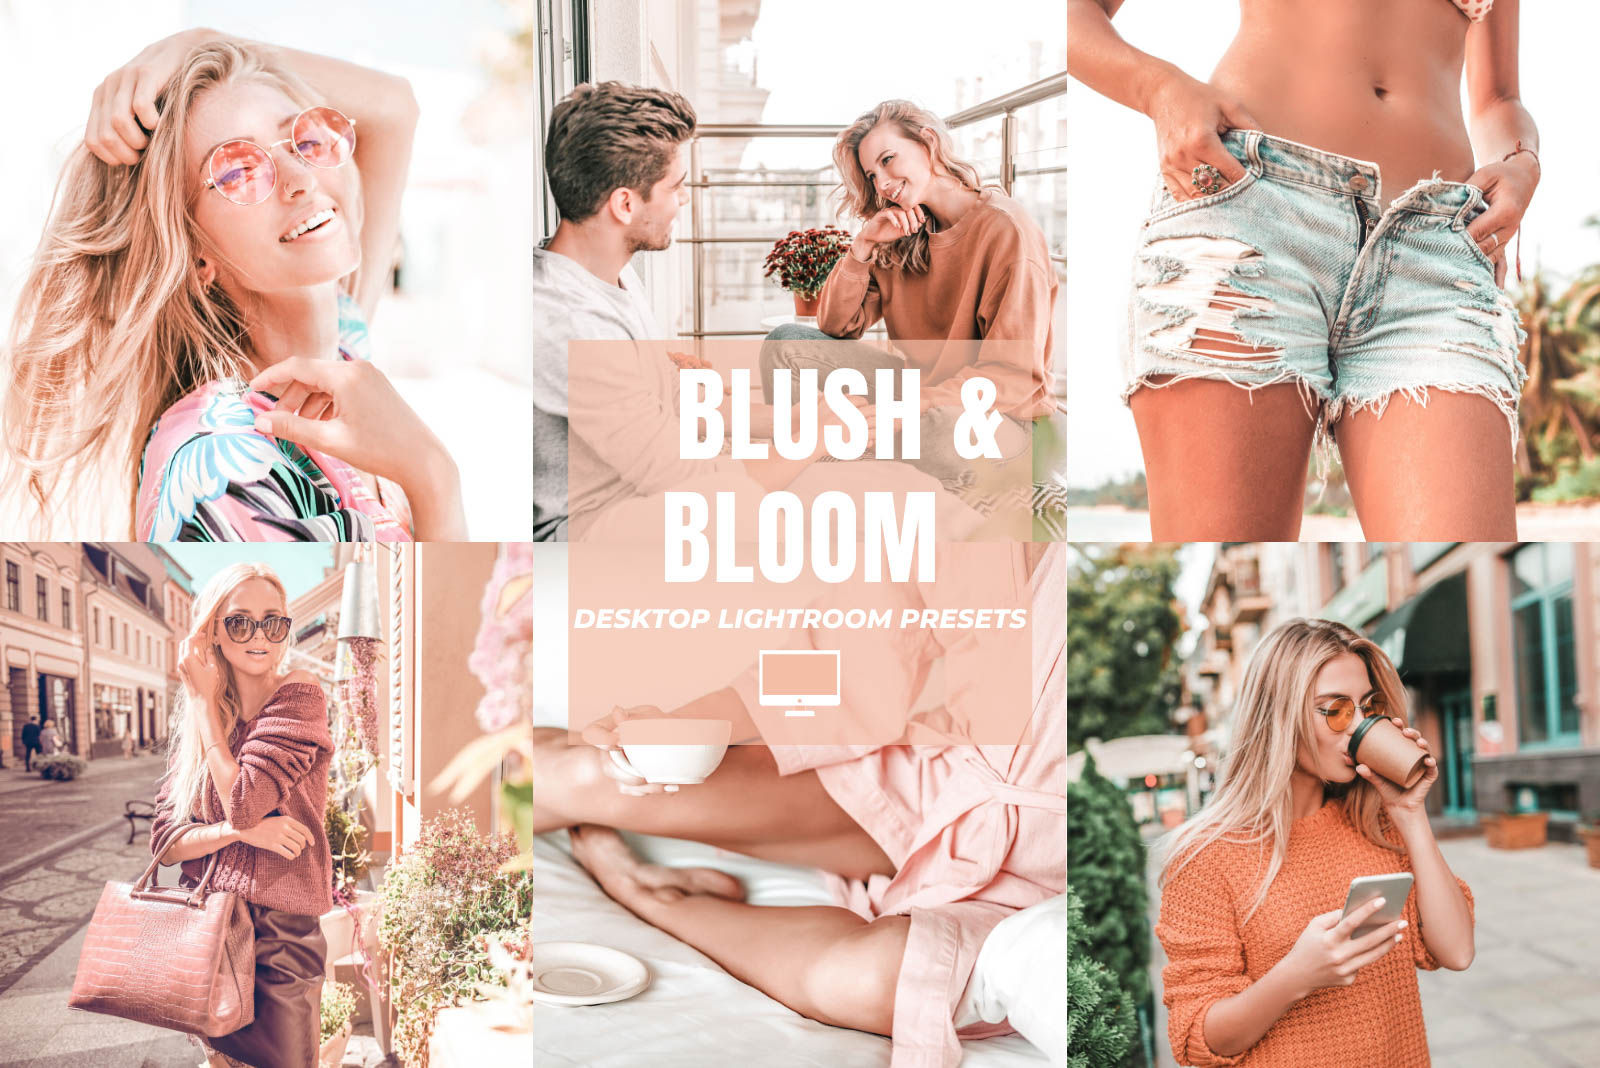 BLUSH & BLOOM DESKTOP LIGHTROOM PRESETS by The Viral Presets